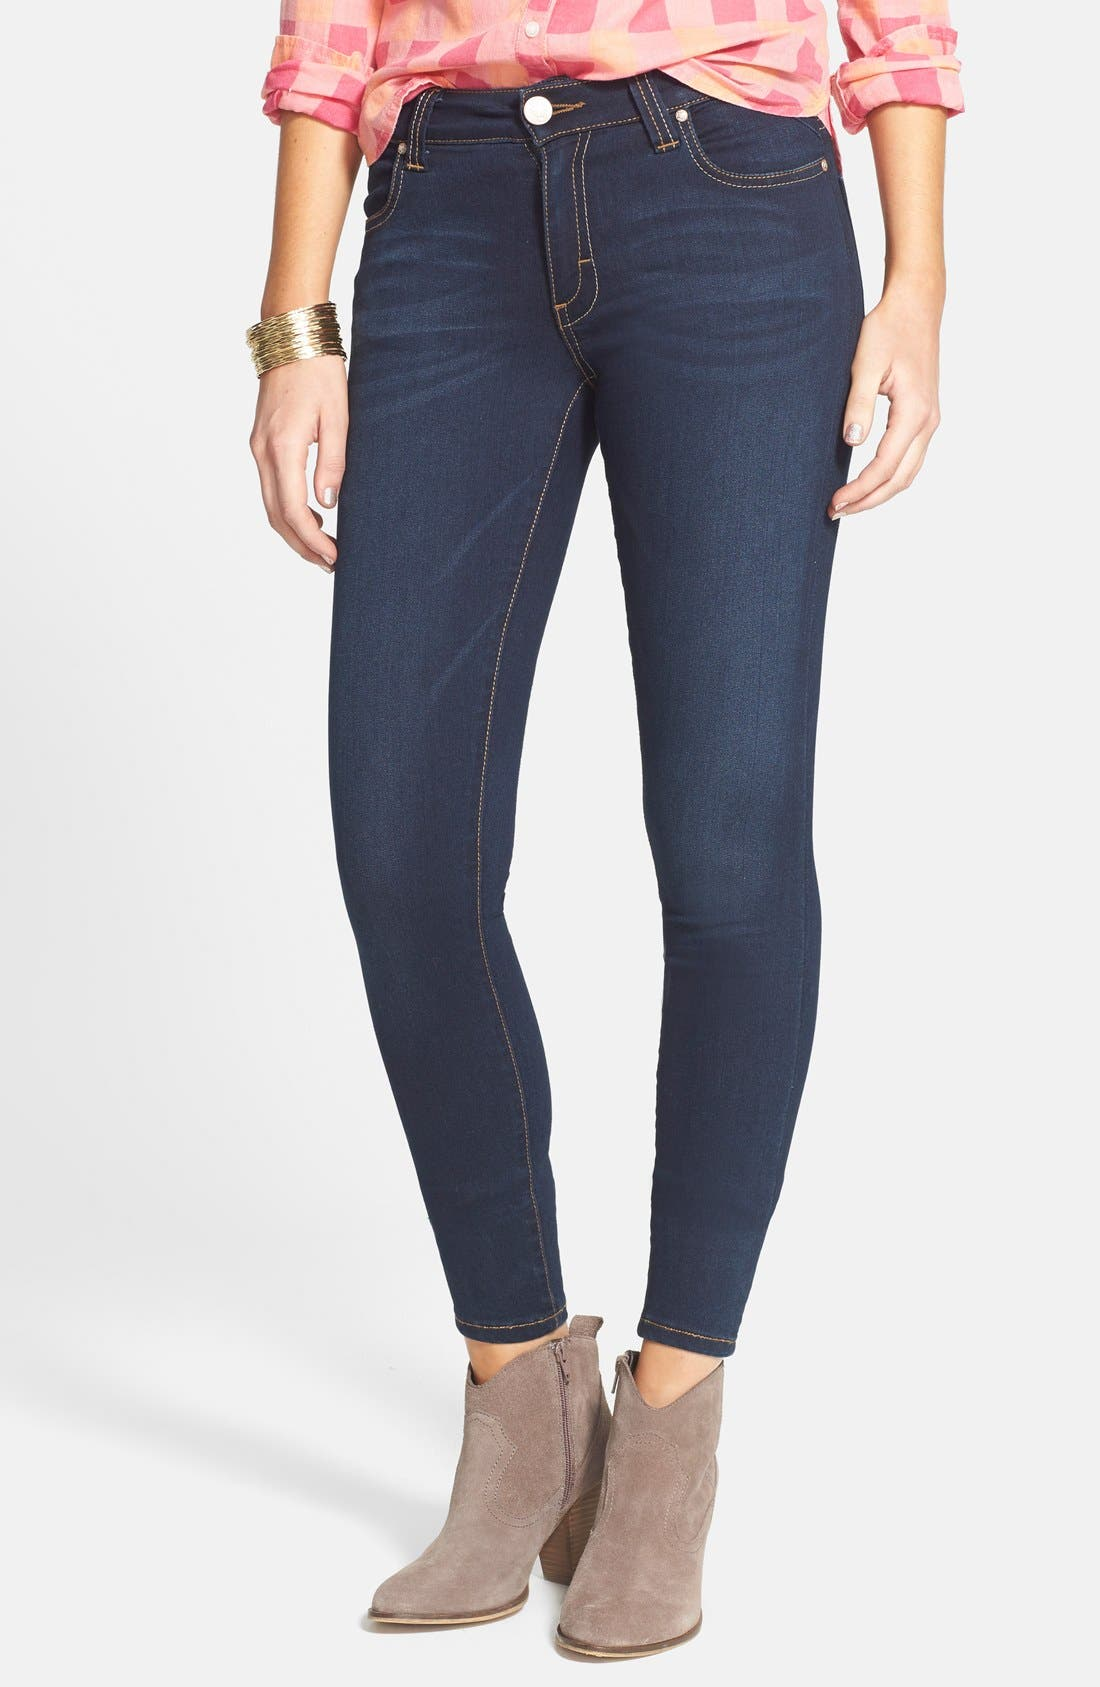 Alternate Image 1 Selected - STS Blue 'Piper' Skinny Jeans